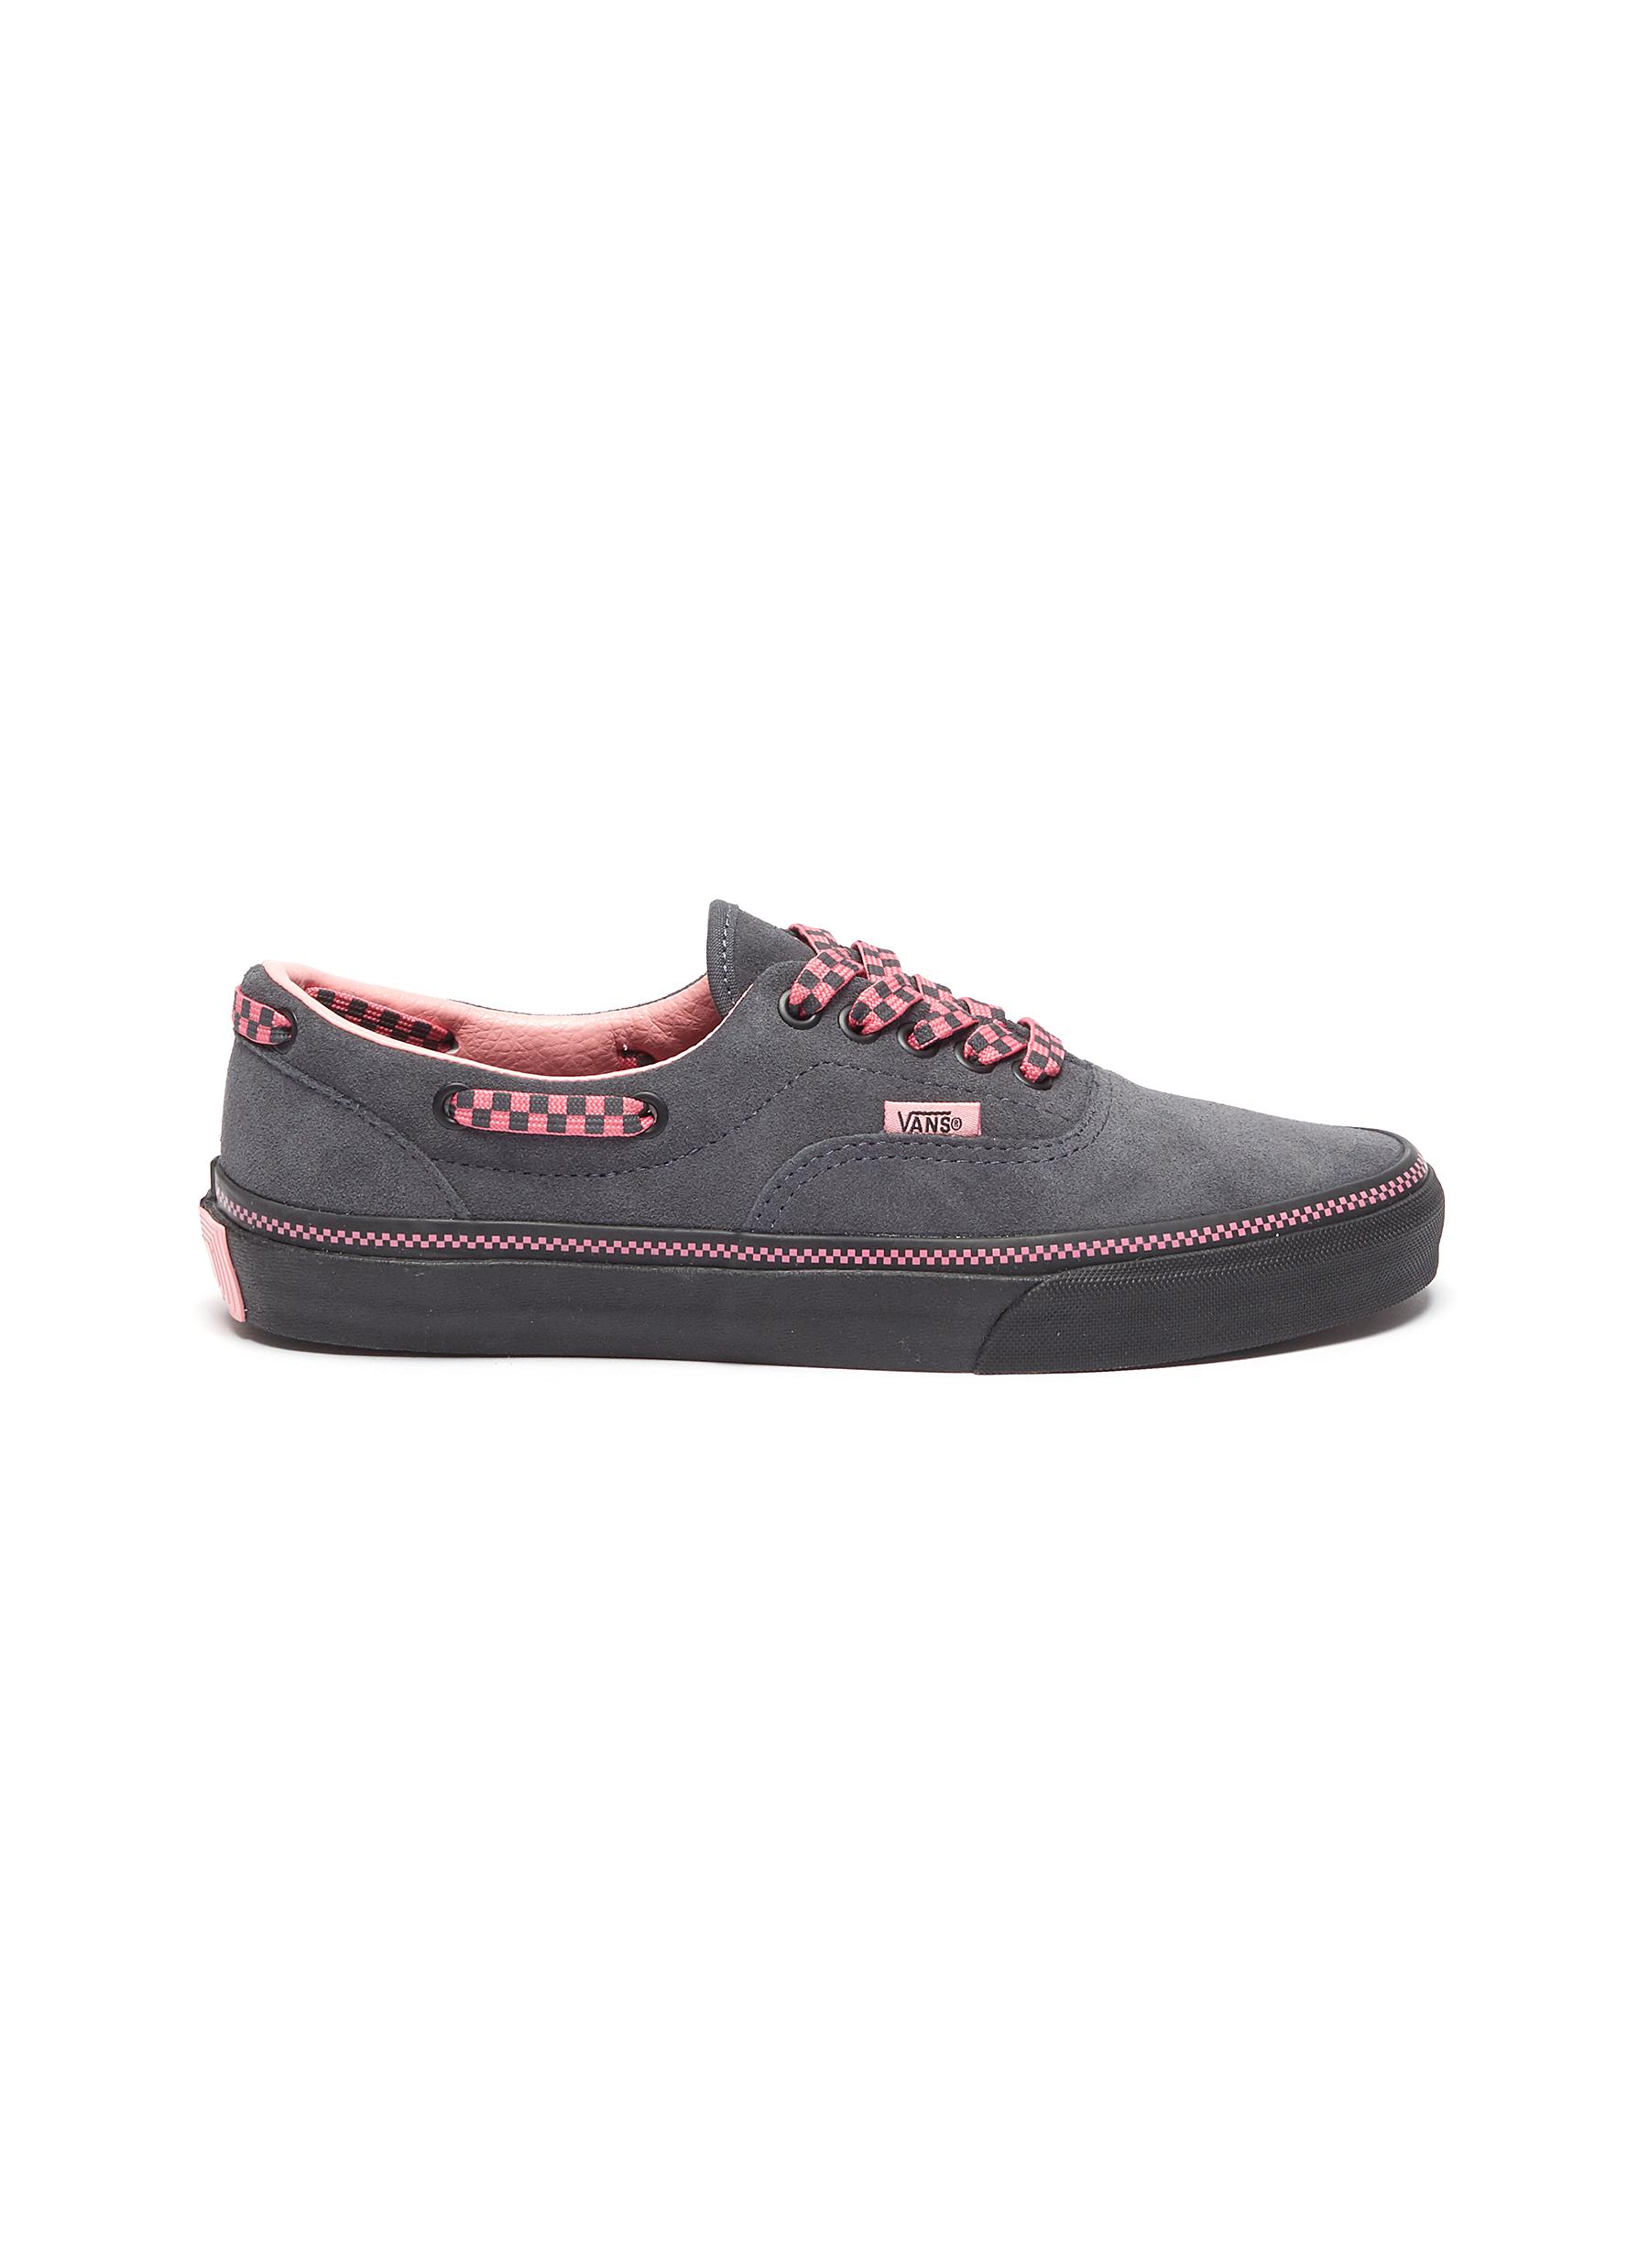 Vans Sneakers Era Lacey contrast lace up suede skaters